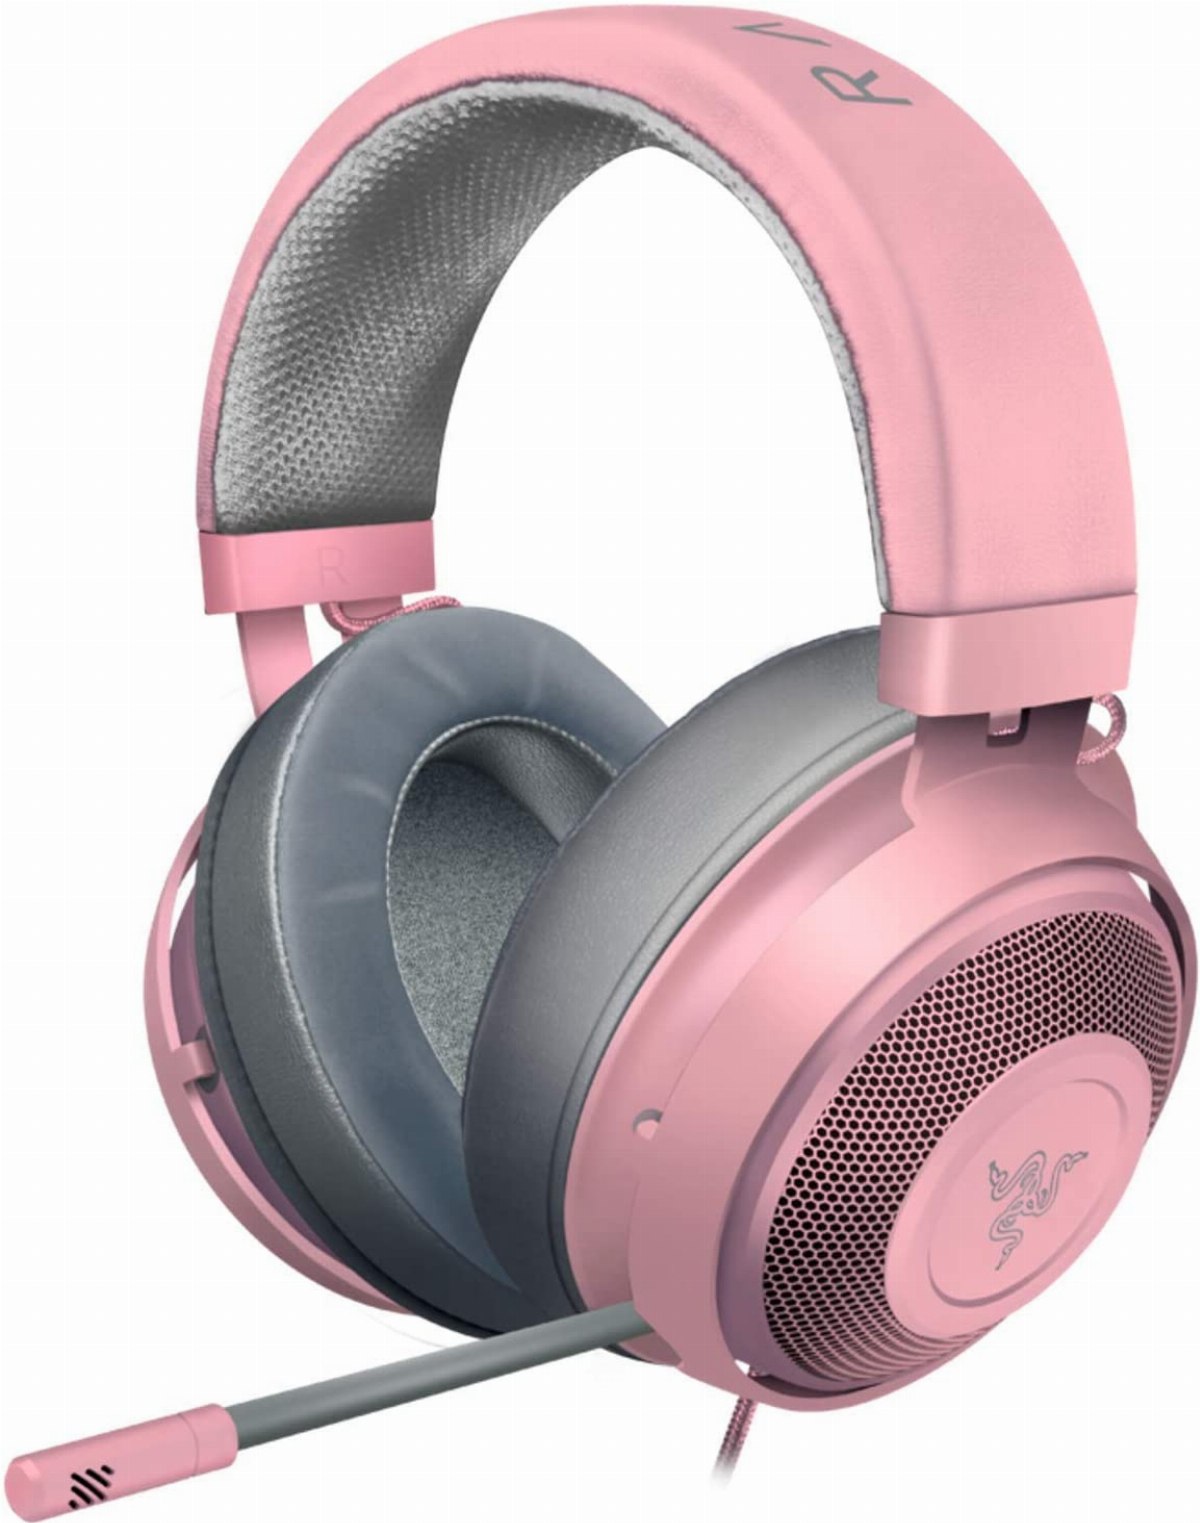 Геймърски слушалки Razer Kraken Pink 2019 Gaming Headset Quartz